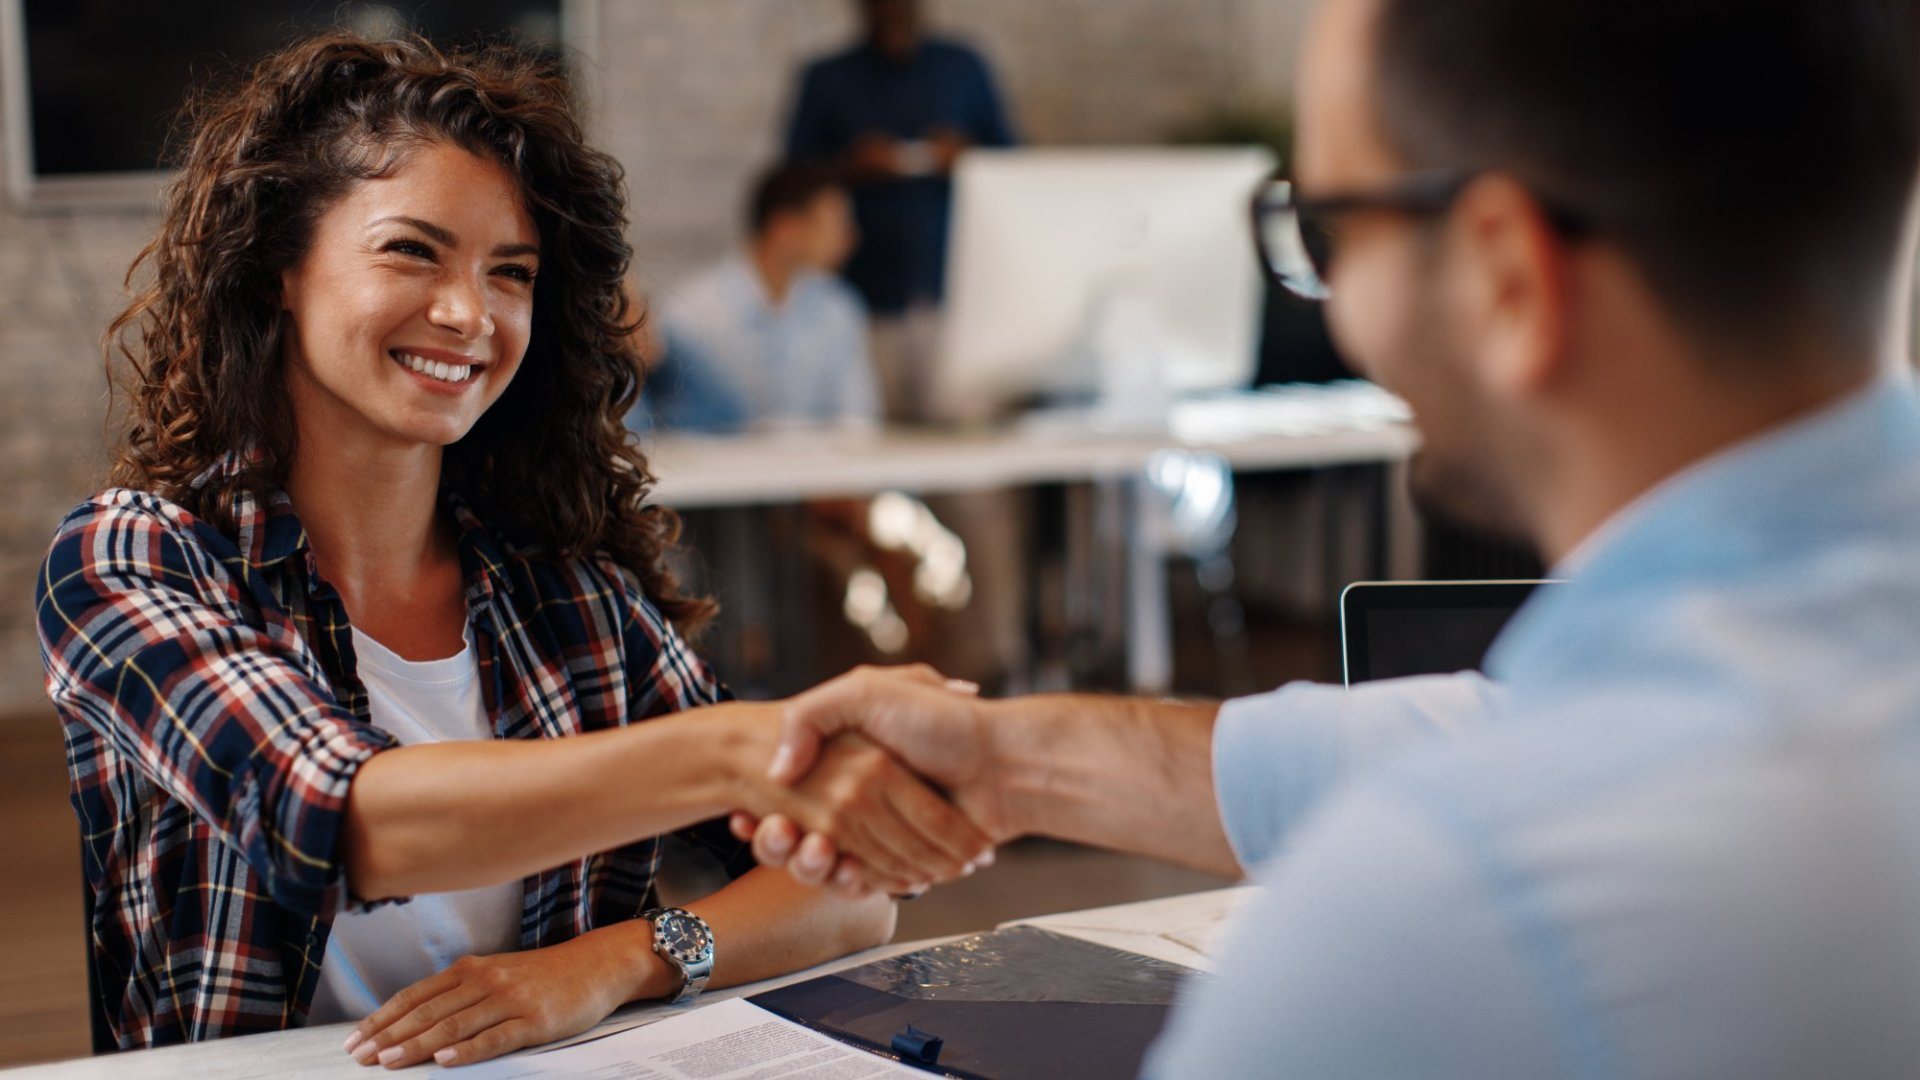 The Key to Making Your Recruitment Process More Effective